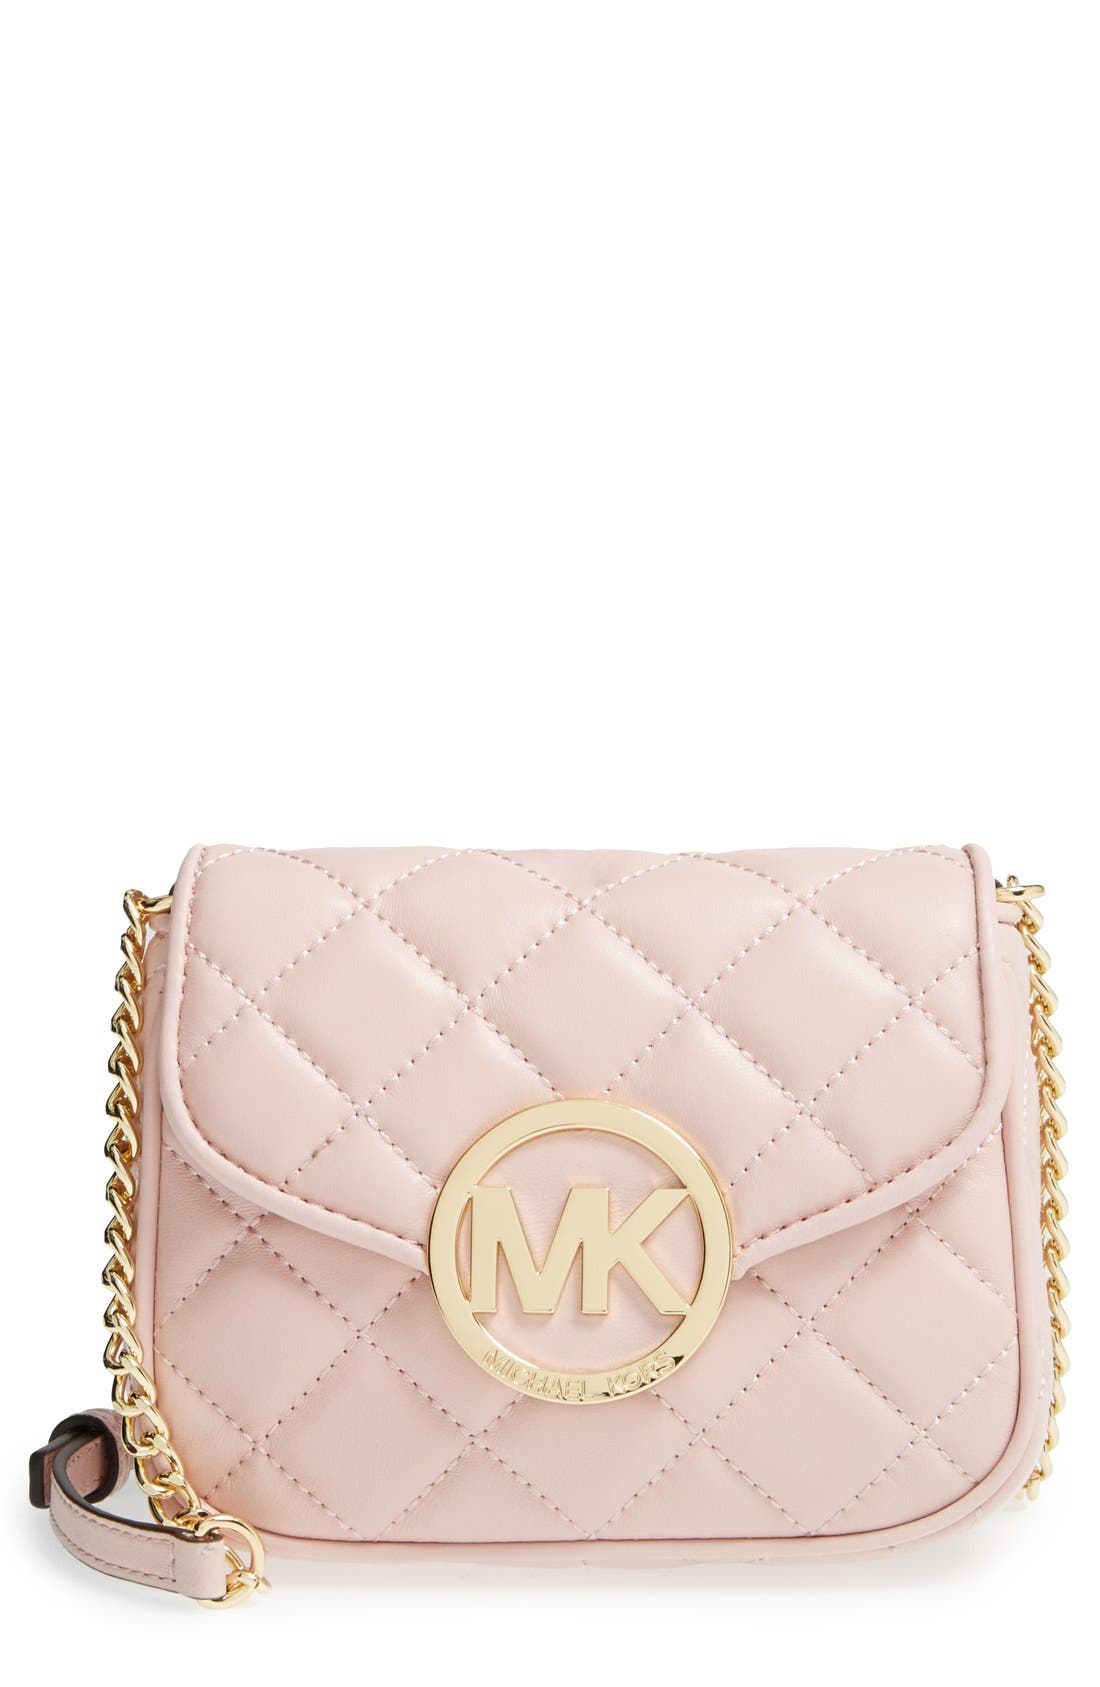 Alternate Image 1 Selected - MICHAEL Michael Kors 'Small Fulton' Quilted Crossbody Bag